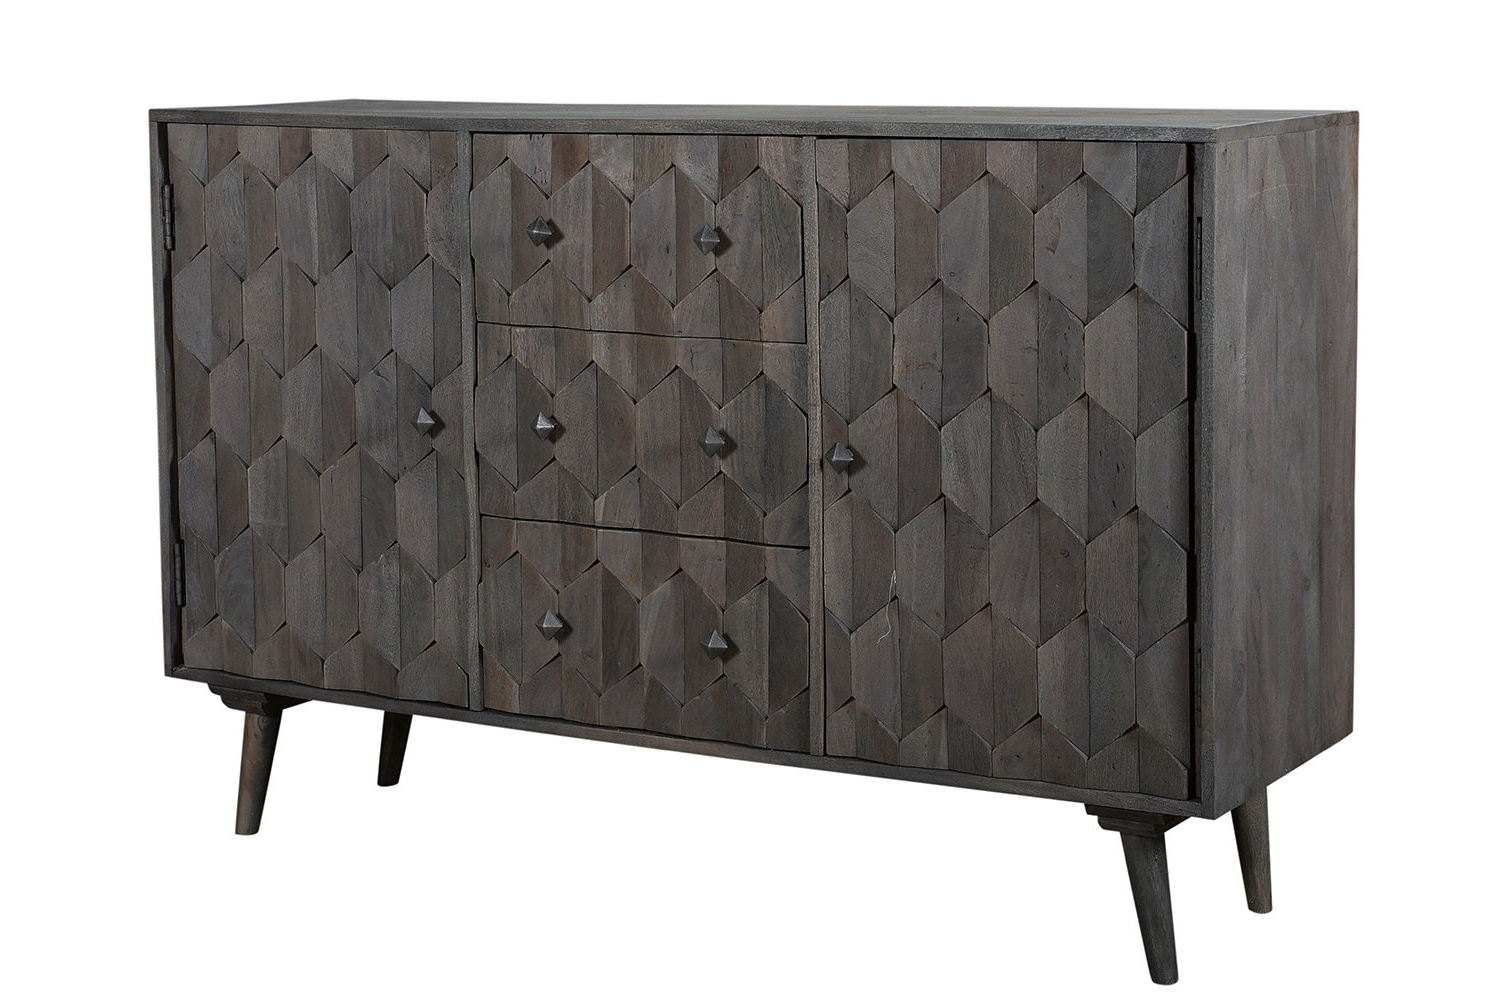 Best And Newest Dussault 3 Drawer Sideboard Intended For Drummond 4 Drawer Sideboards (View 3 of 20)